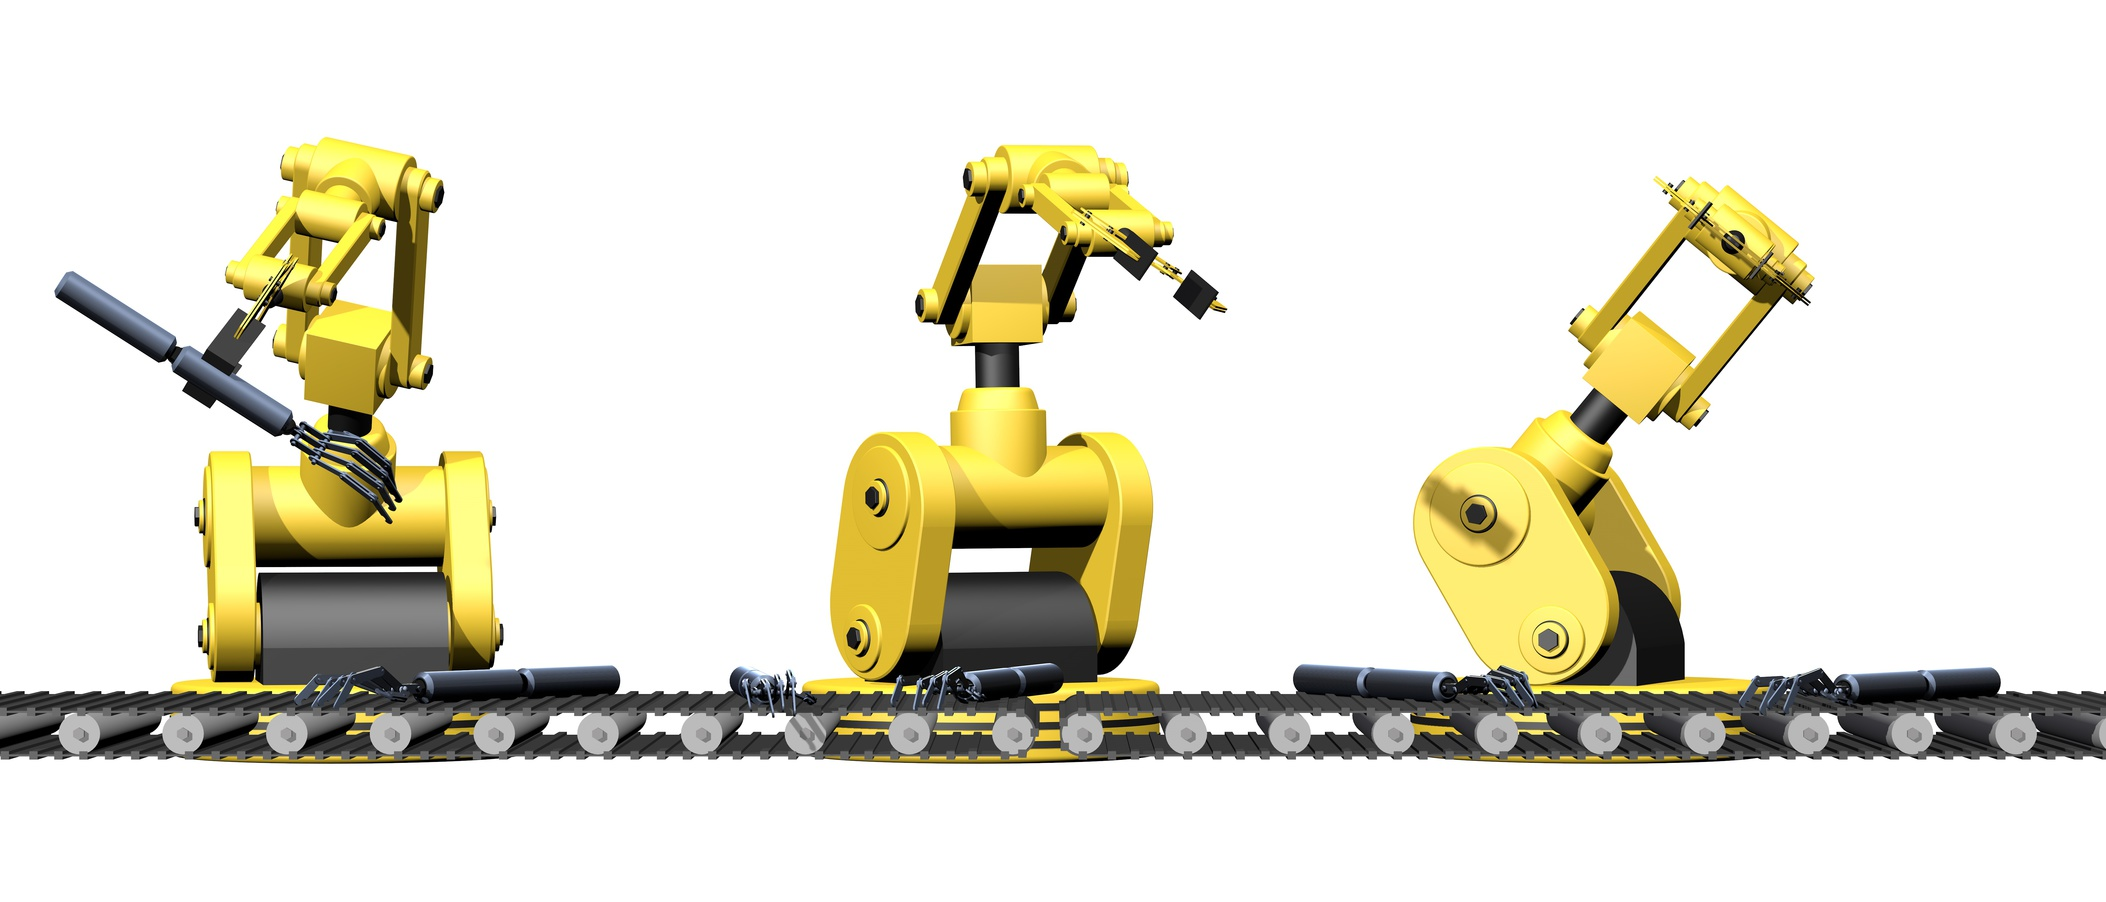 For mass production, more traditional assembly methods can often be more efficient than 3D printing.